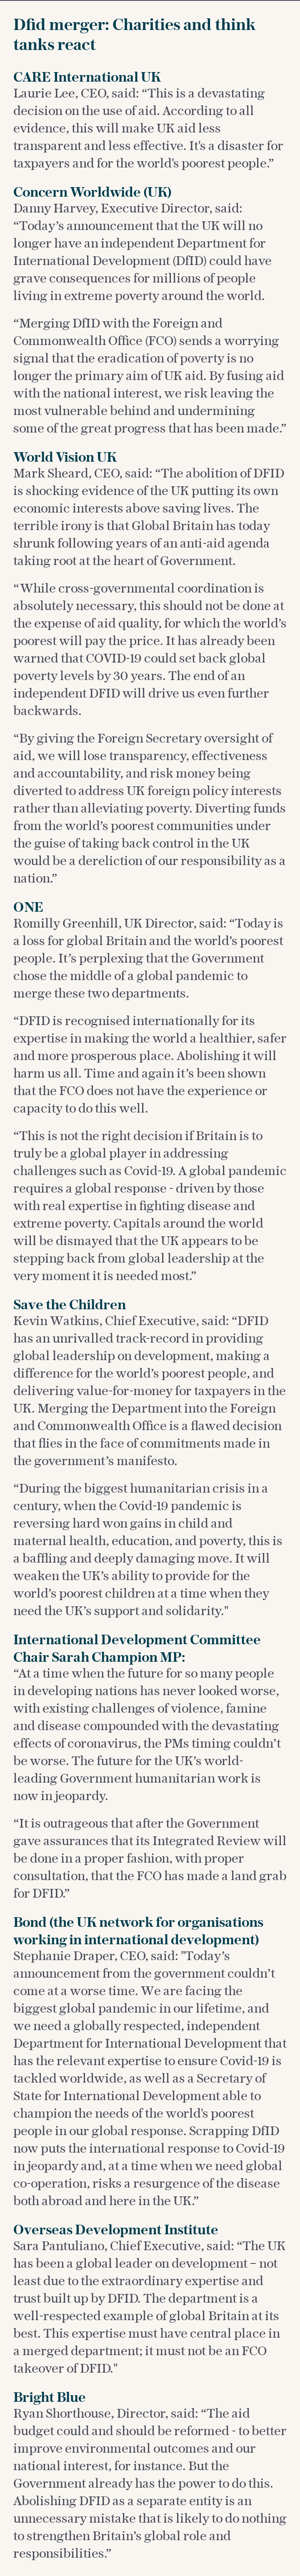 Dfid merger reaction